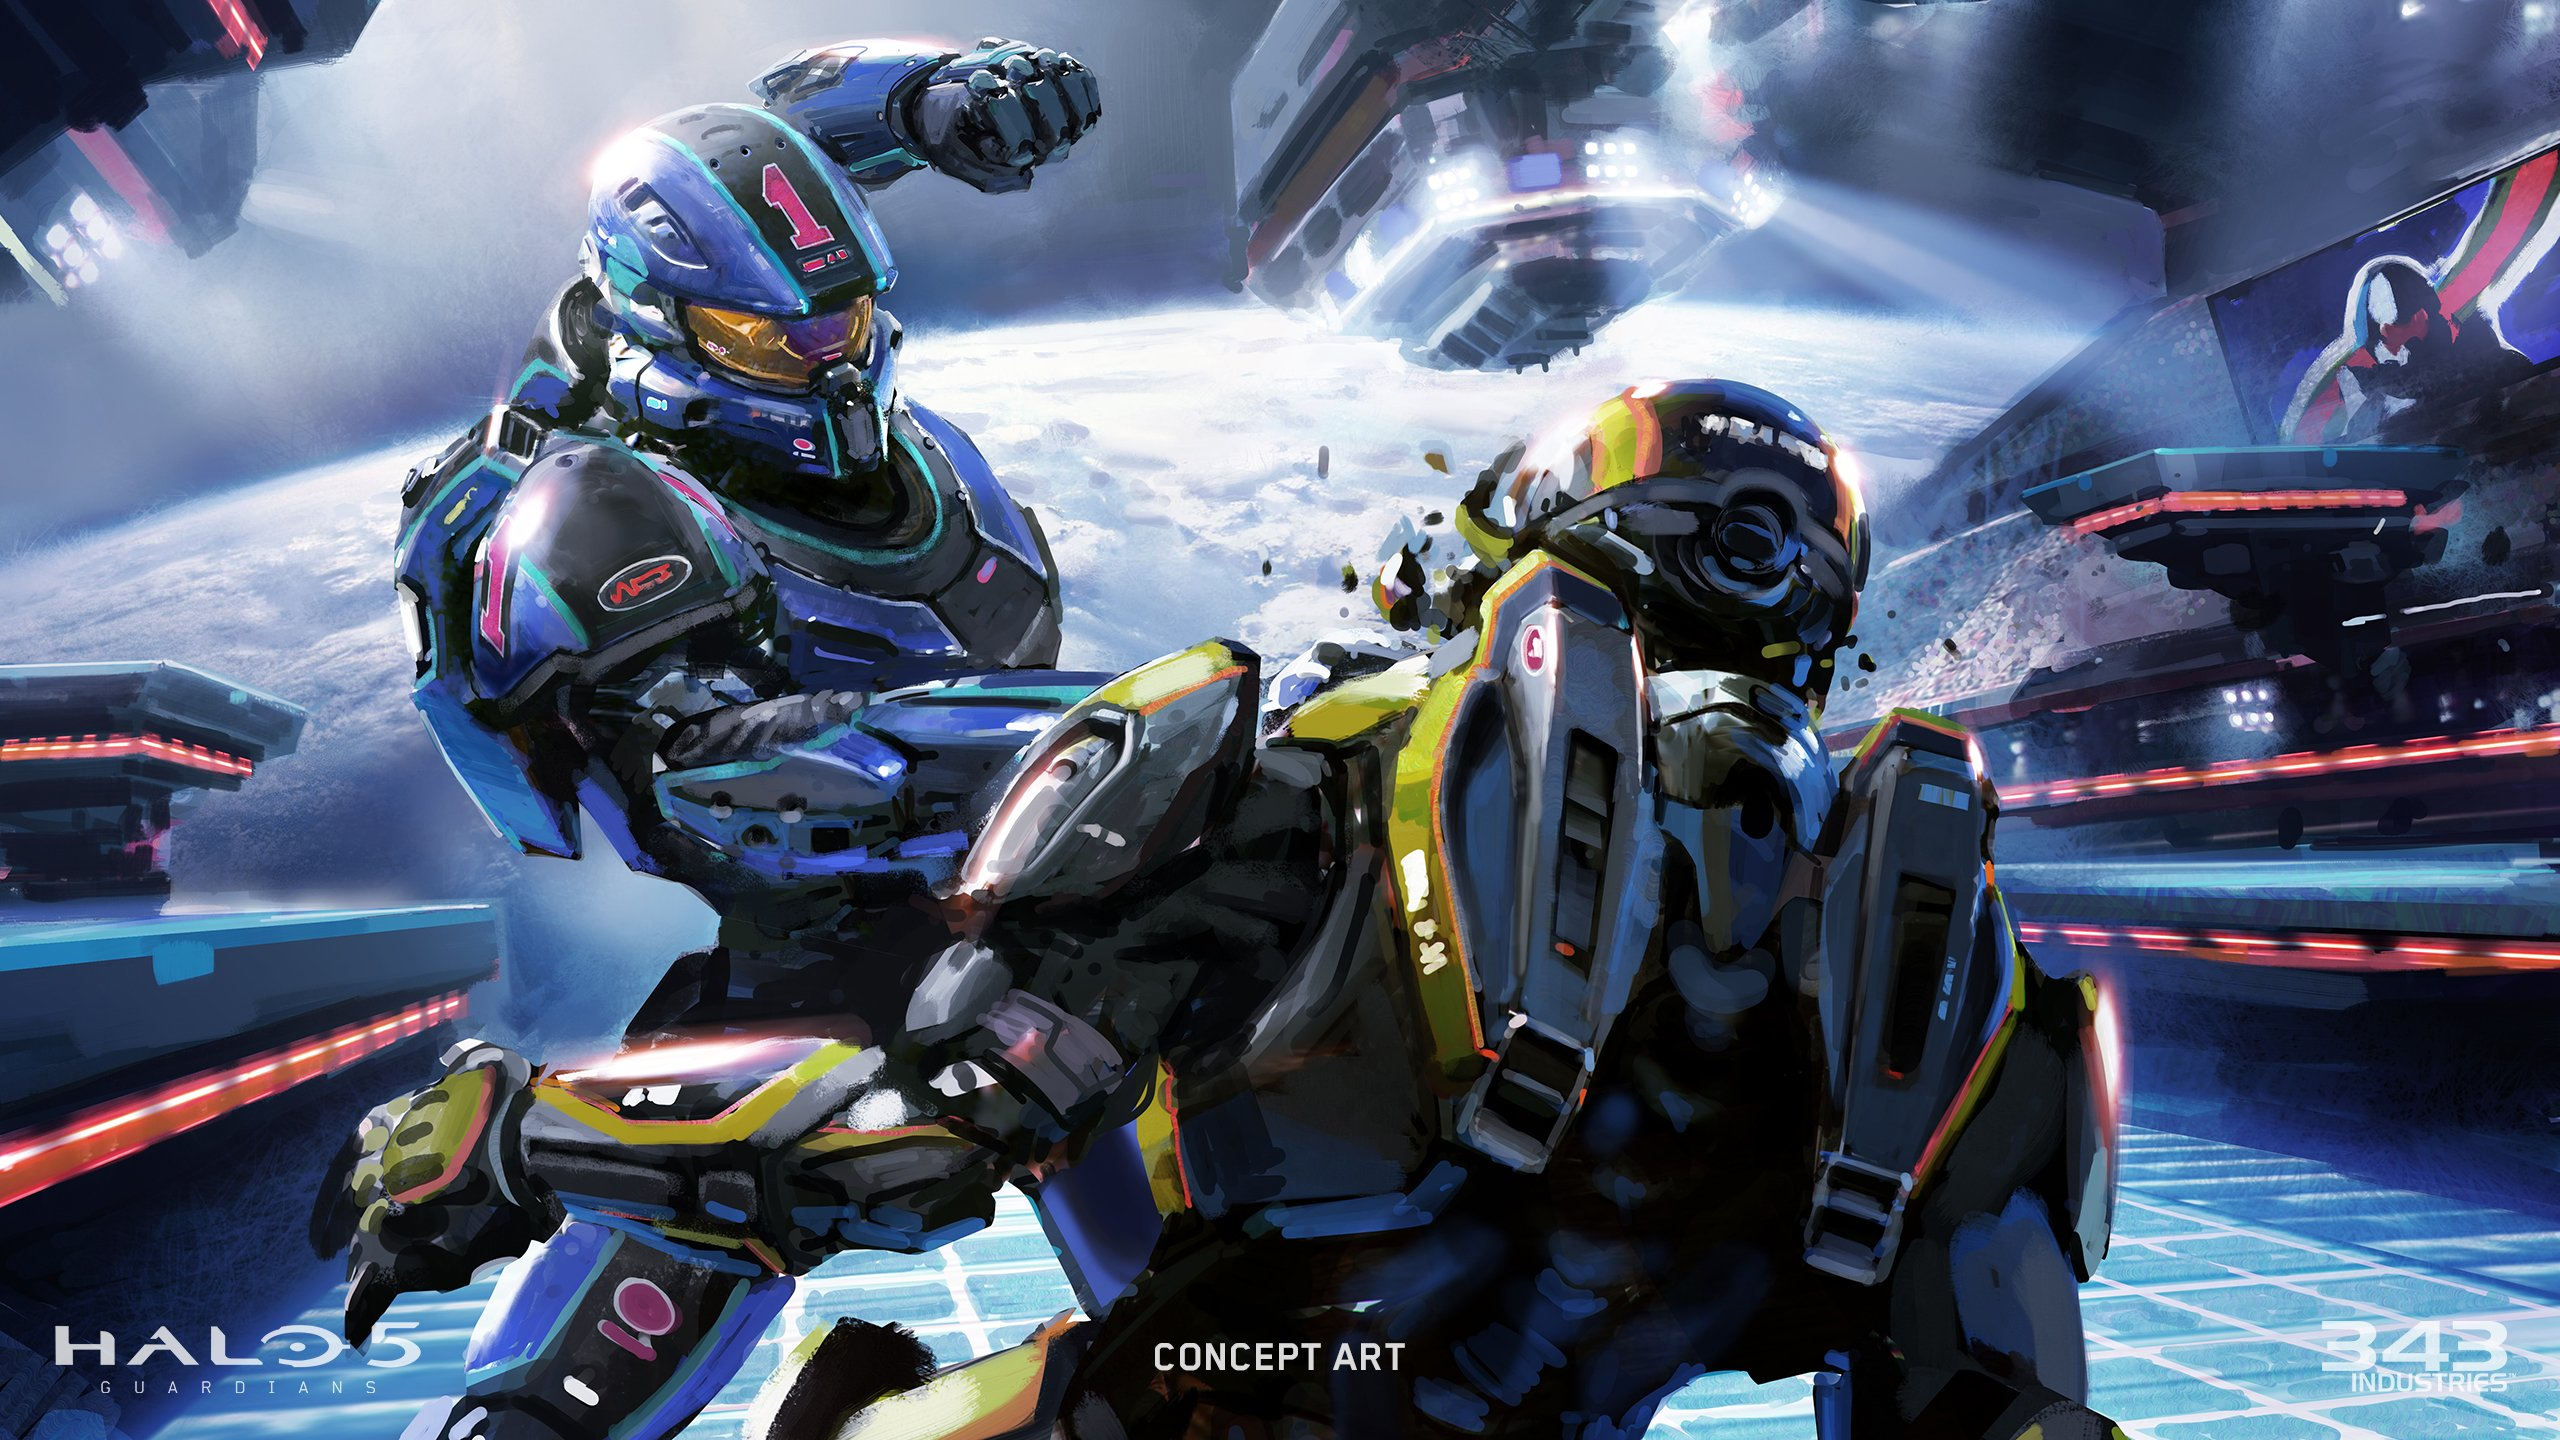 on September 23 2015 By Stephen Comments Off on Halo 5 Wallpaper HD 2560x1440